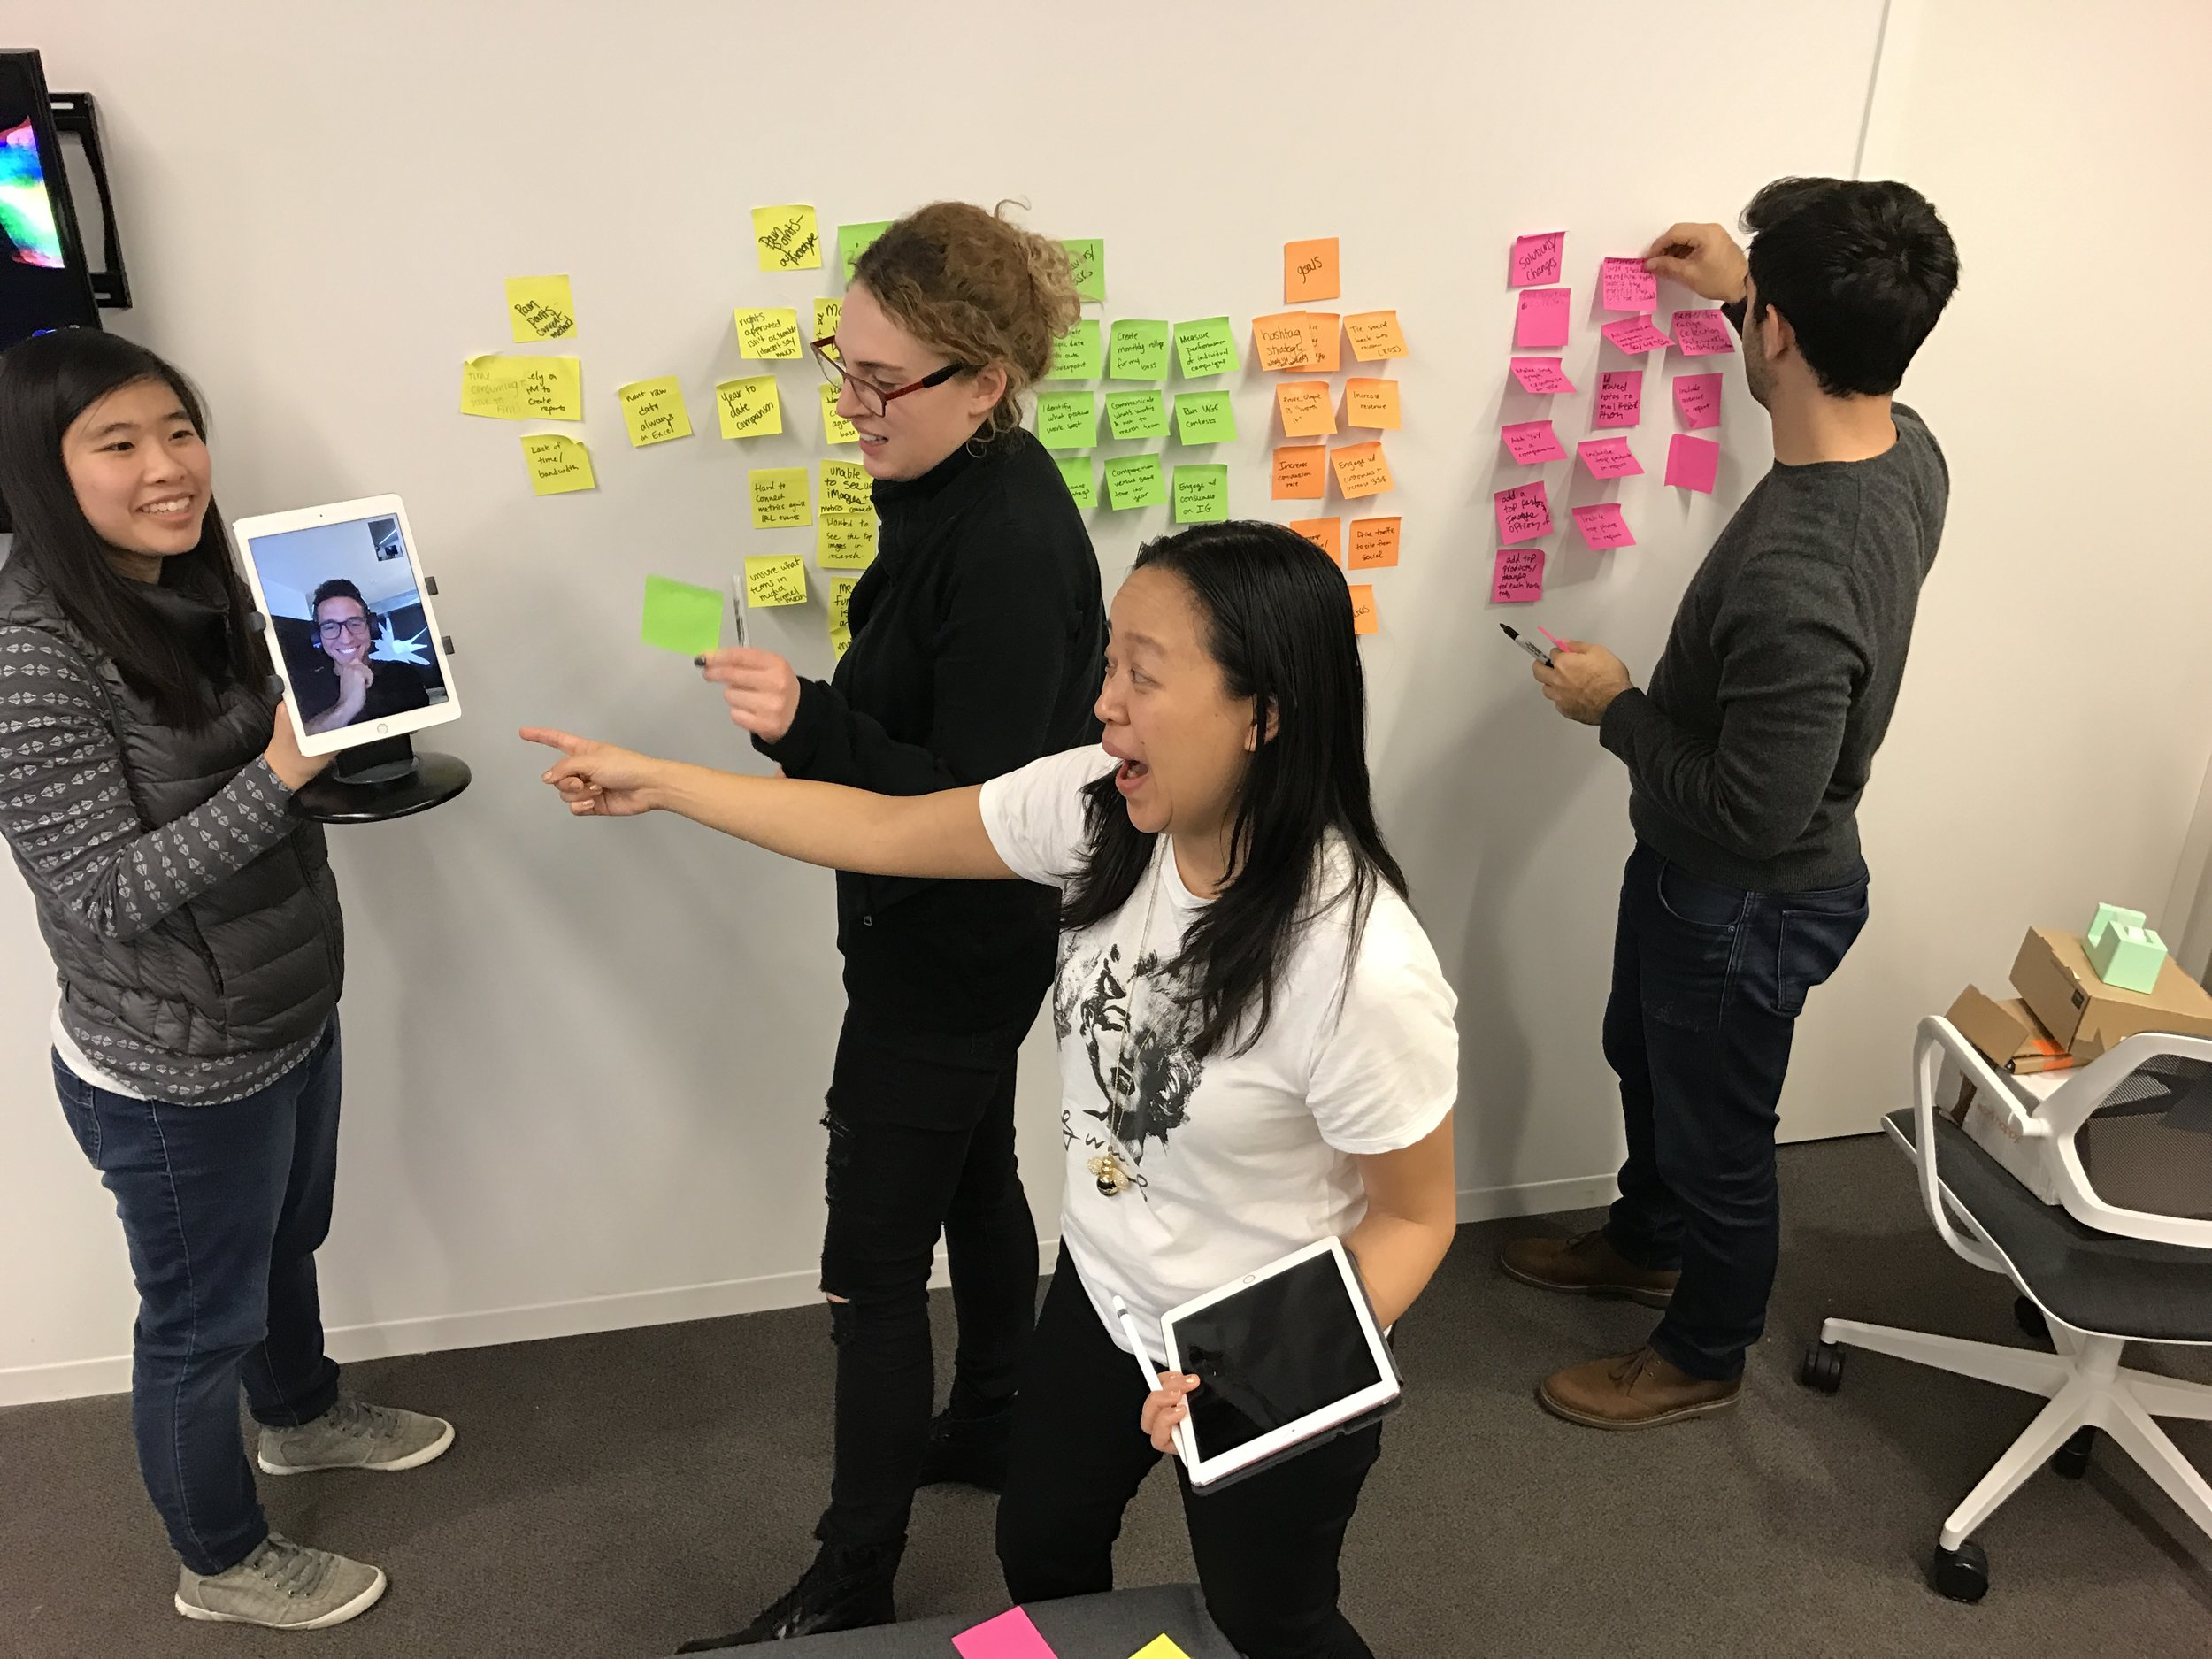 Olapic Evaluative Research & Design Strategy - UX RESEARCHER & STRATEGIST